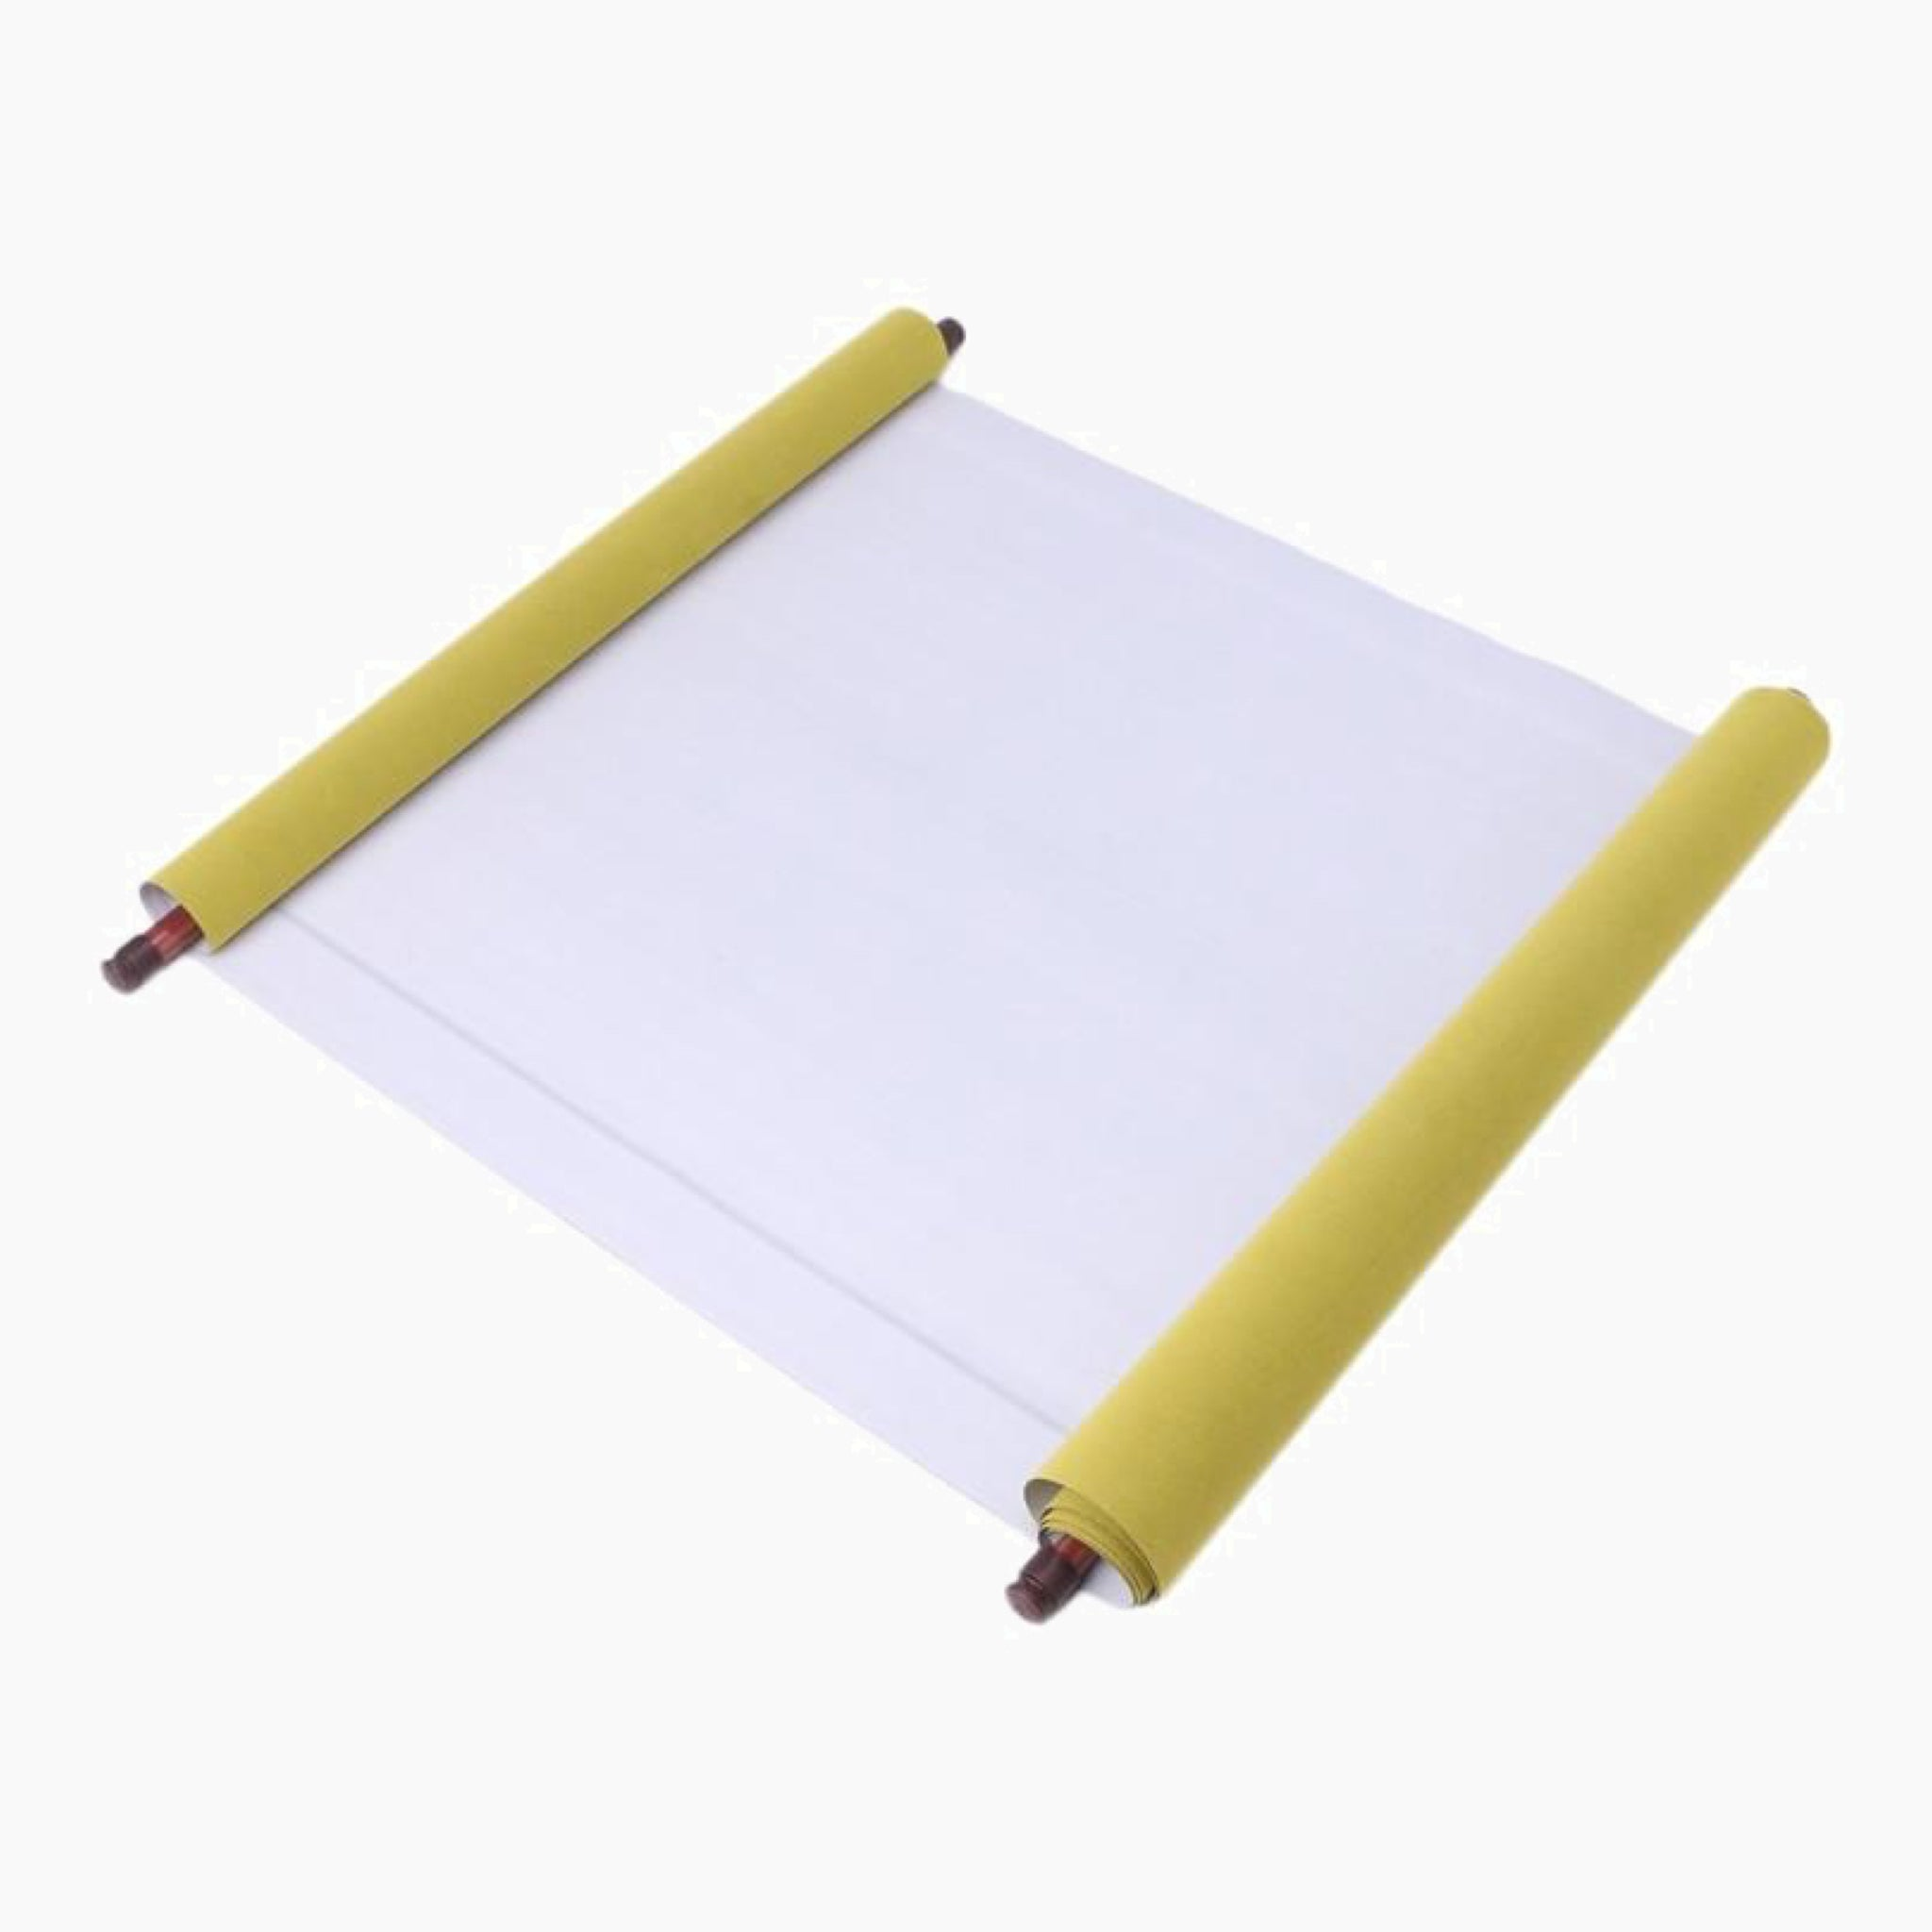 Reusable 1.5m Chinese Magic Scroll Cloth Water Paper Calligraphy Fabric Craft Book Notebook Trend